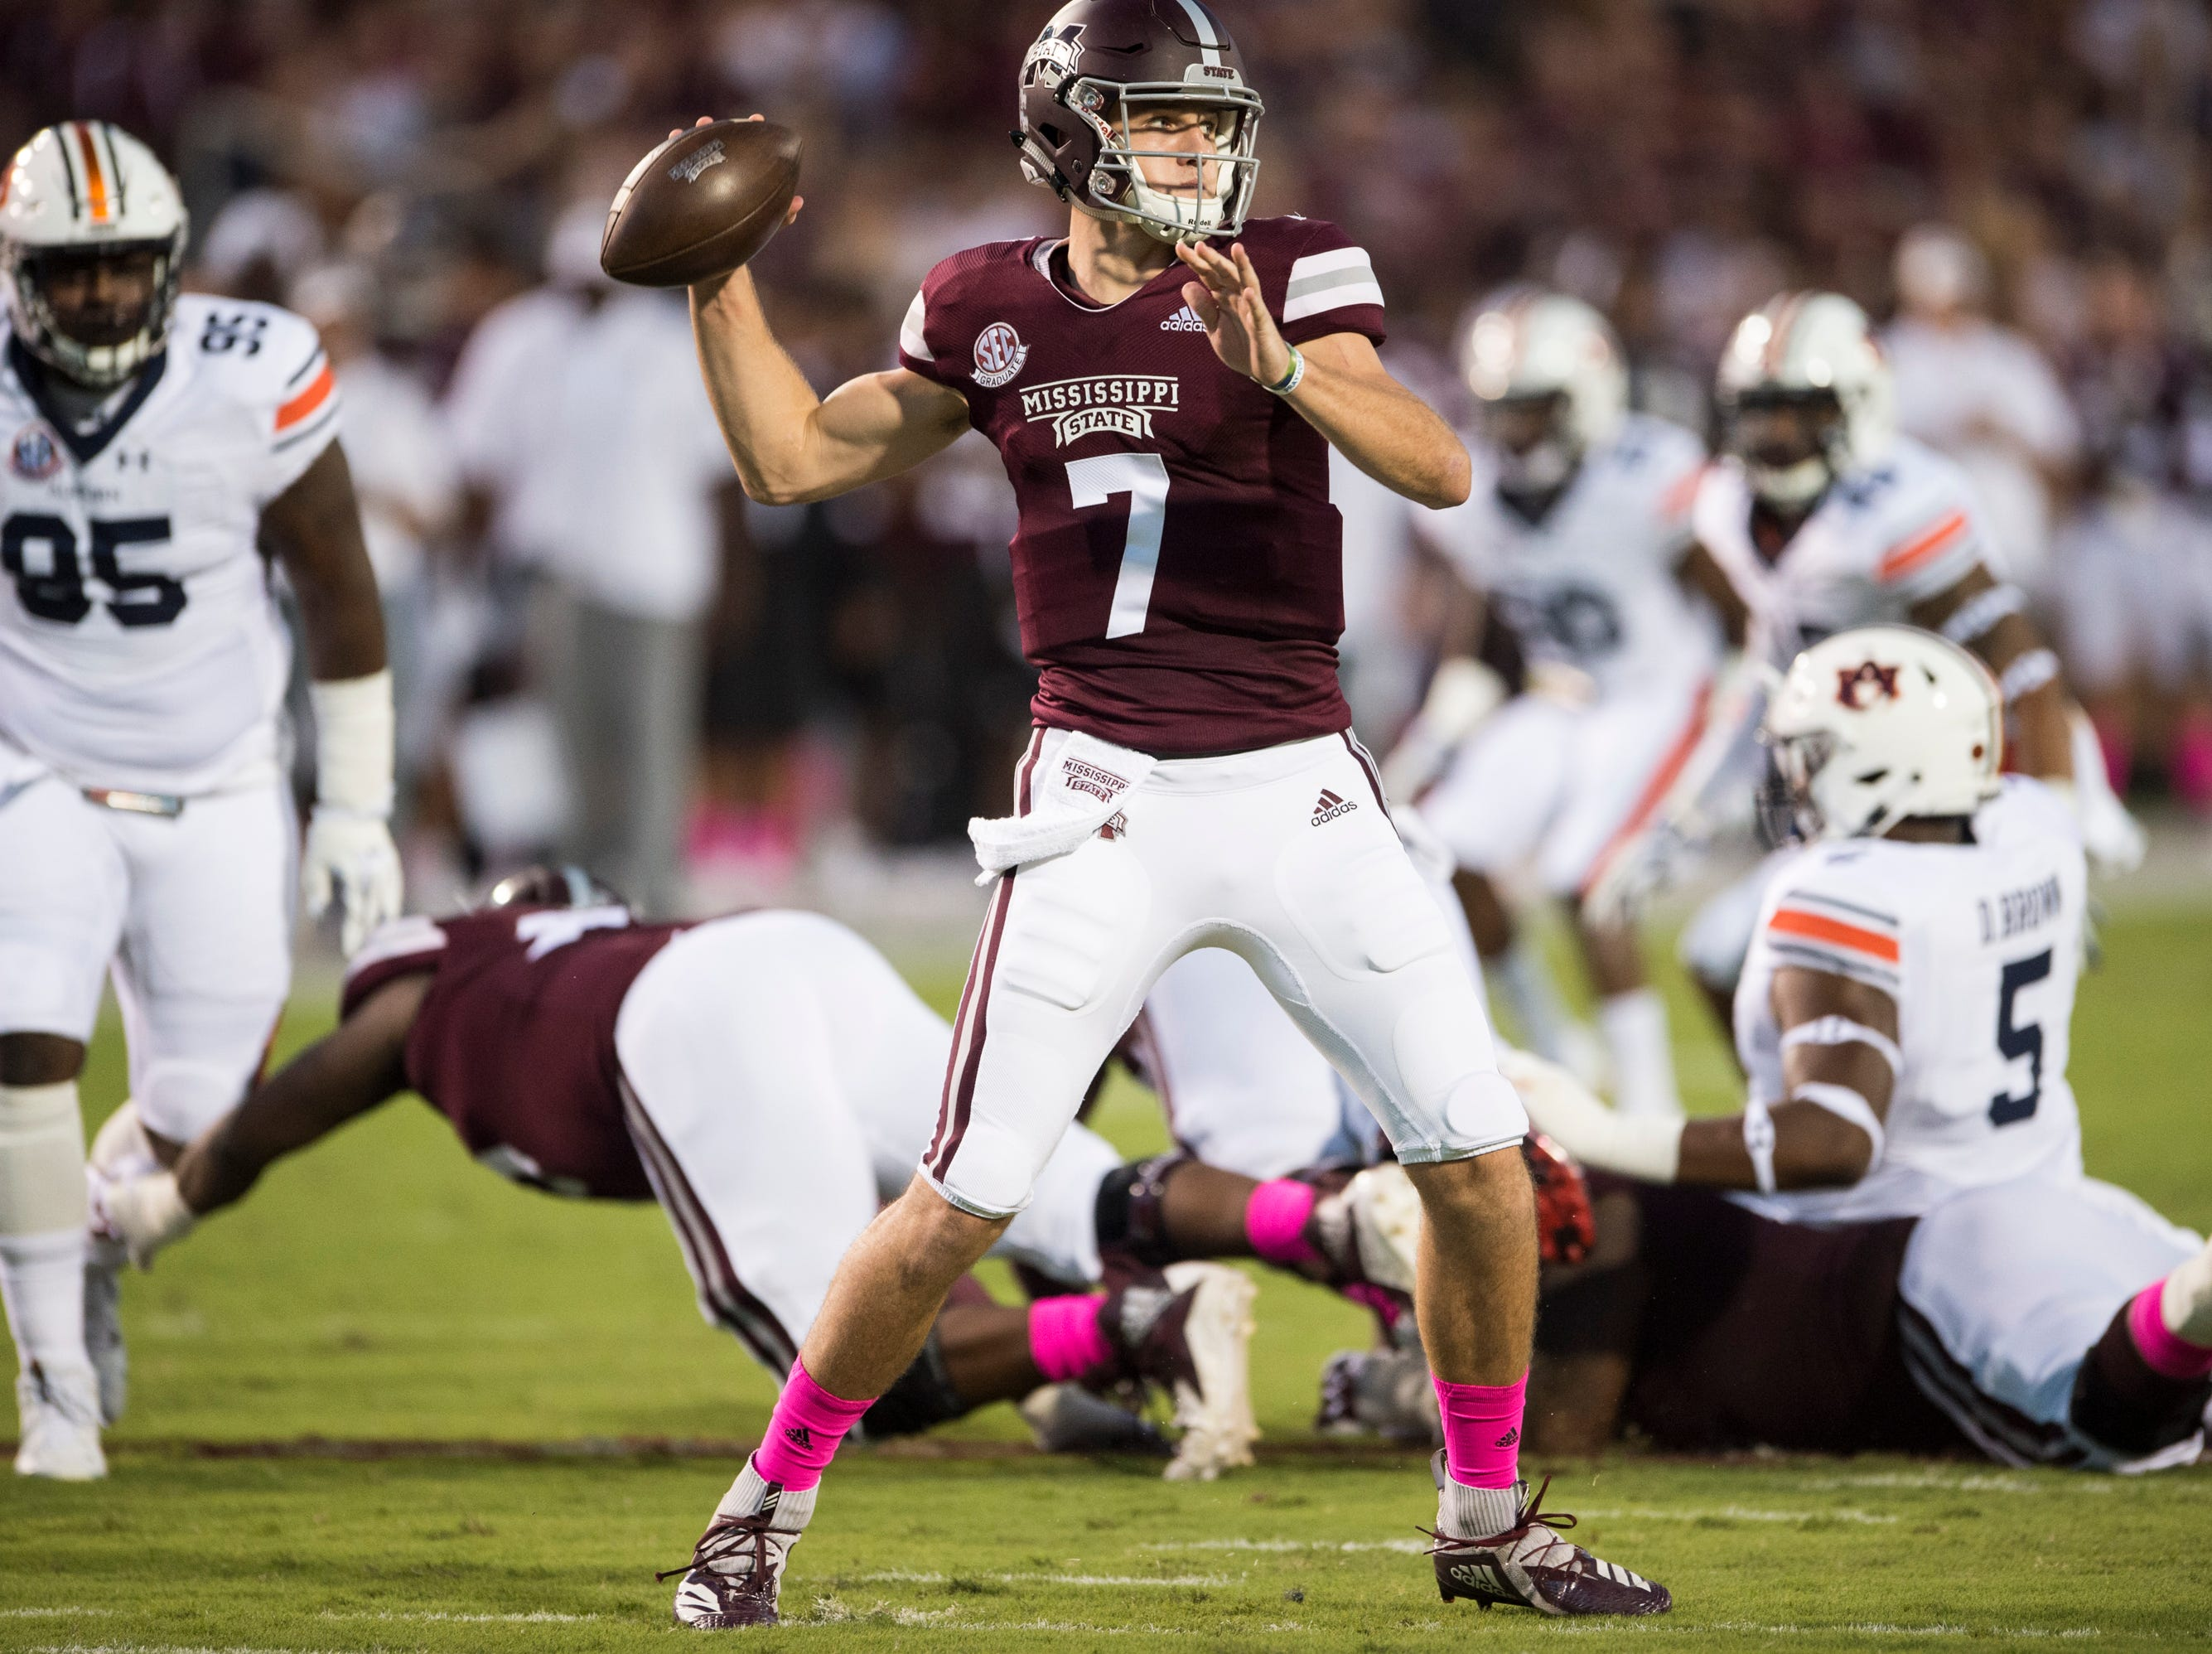 Mississippi State's Nick Fitzgerald (7) throws a screen pass against  Auburn at Davis Wade Stadium in Starkville, Miss., on Saturday, Oct. 6, 2018. Mississippi State leads Auburn 13-3 at halftime.